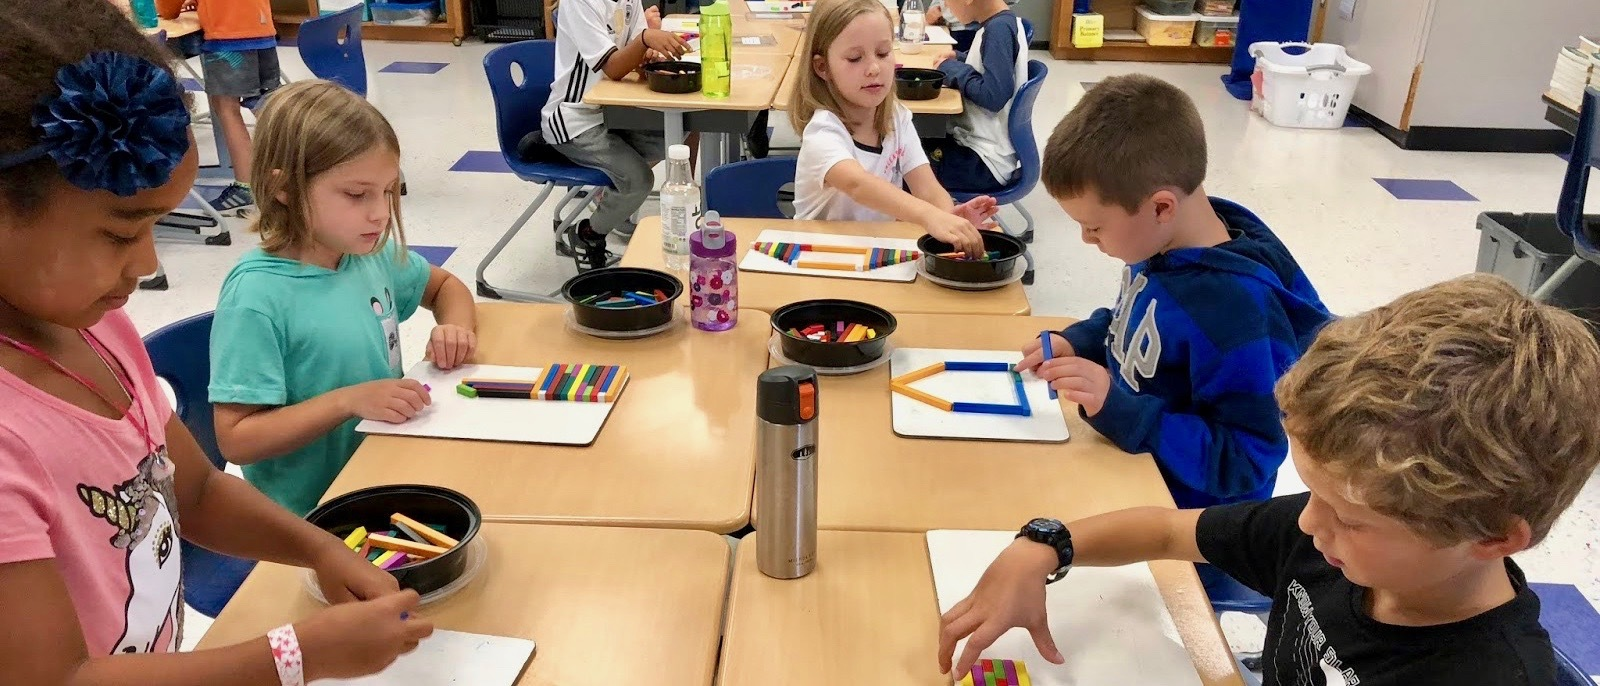 Students use Cuisenaire rods to learn math concepts.